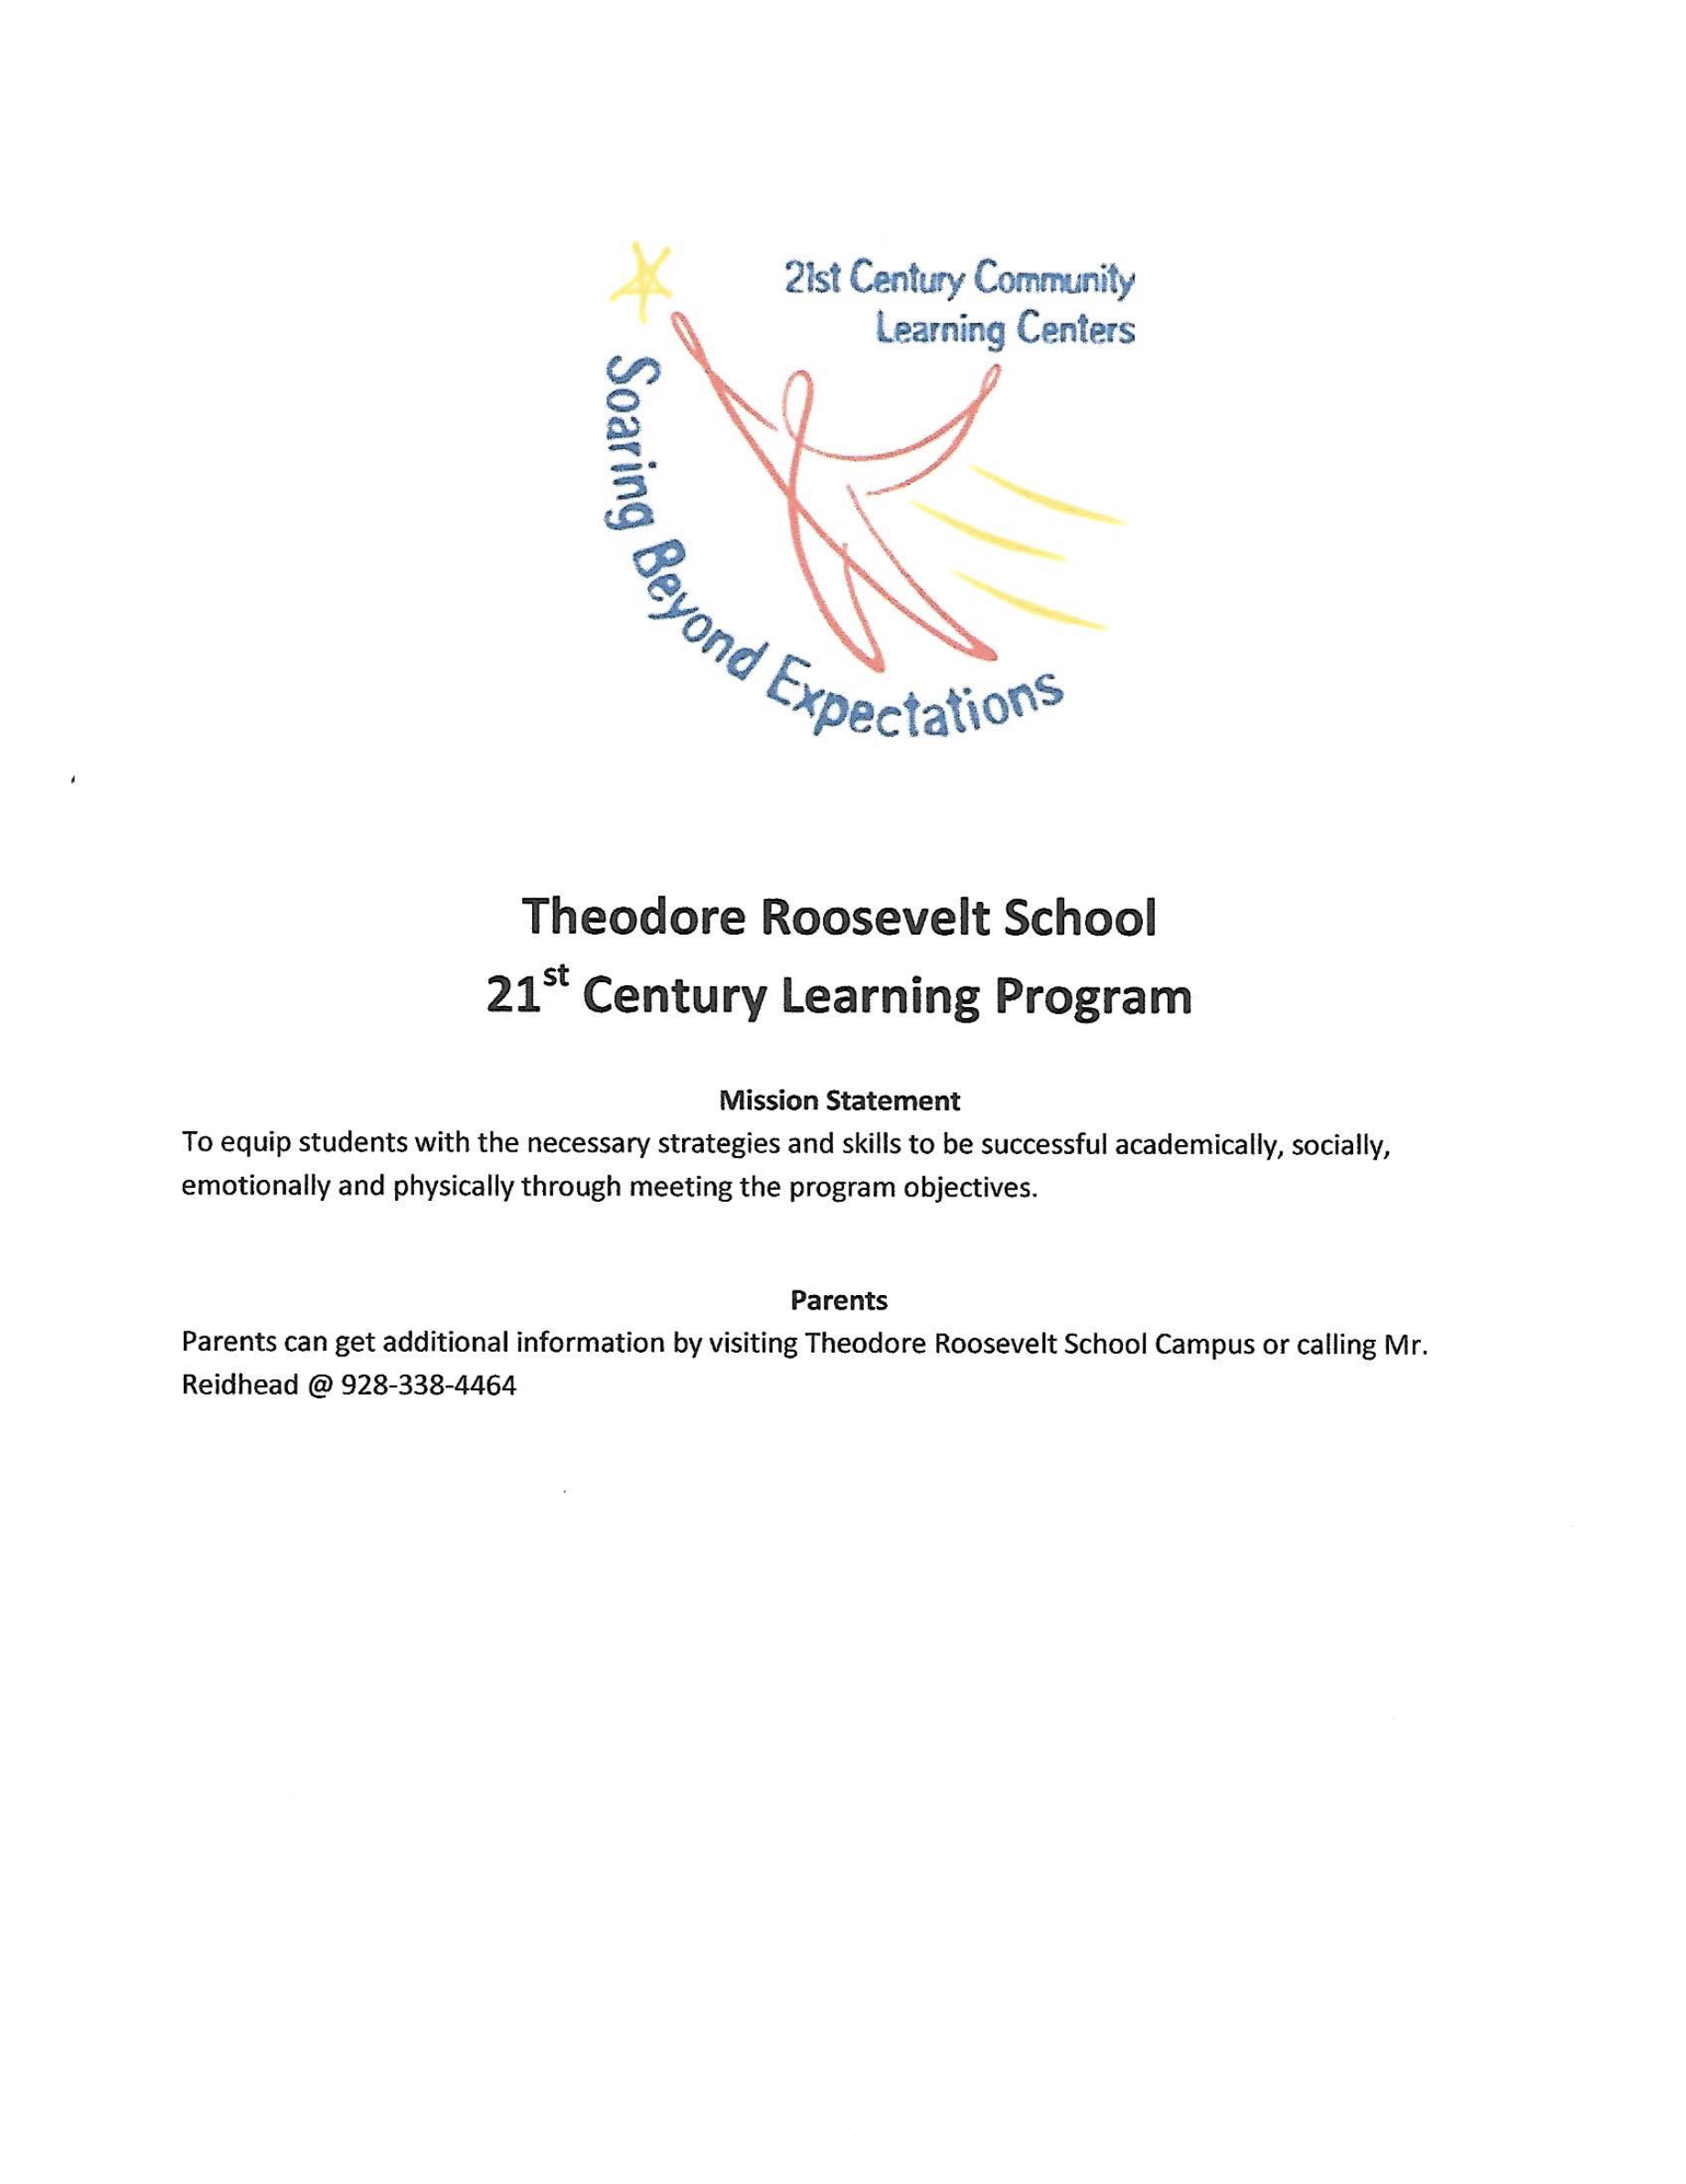 21st Century Learning Program Brochure cover (image)